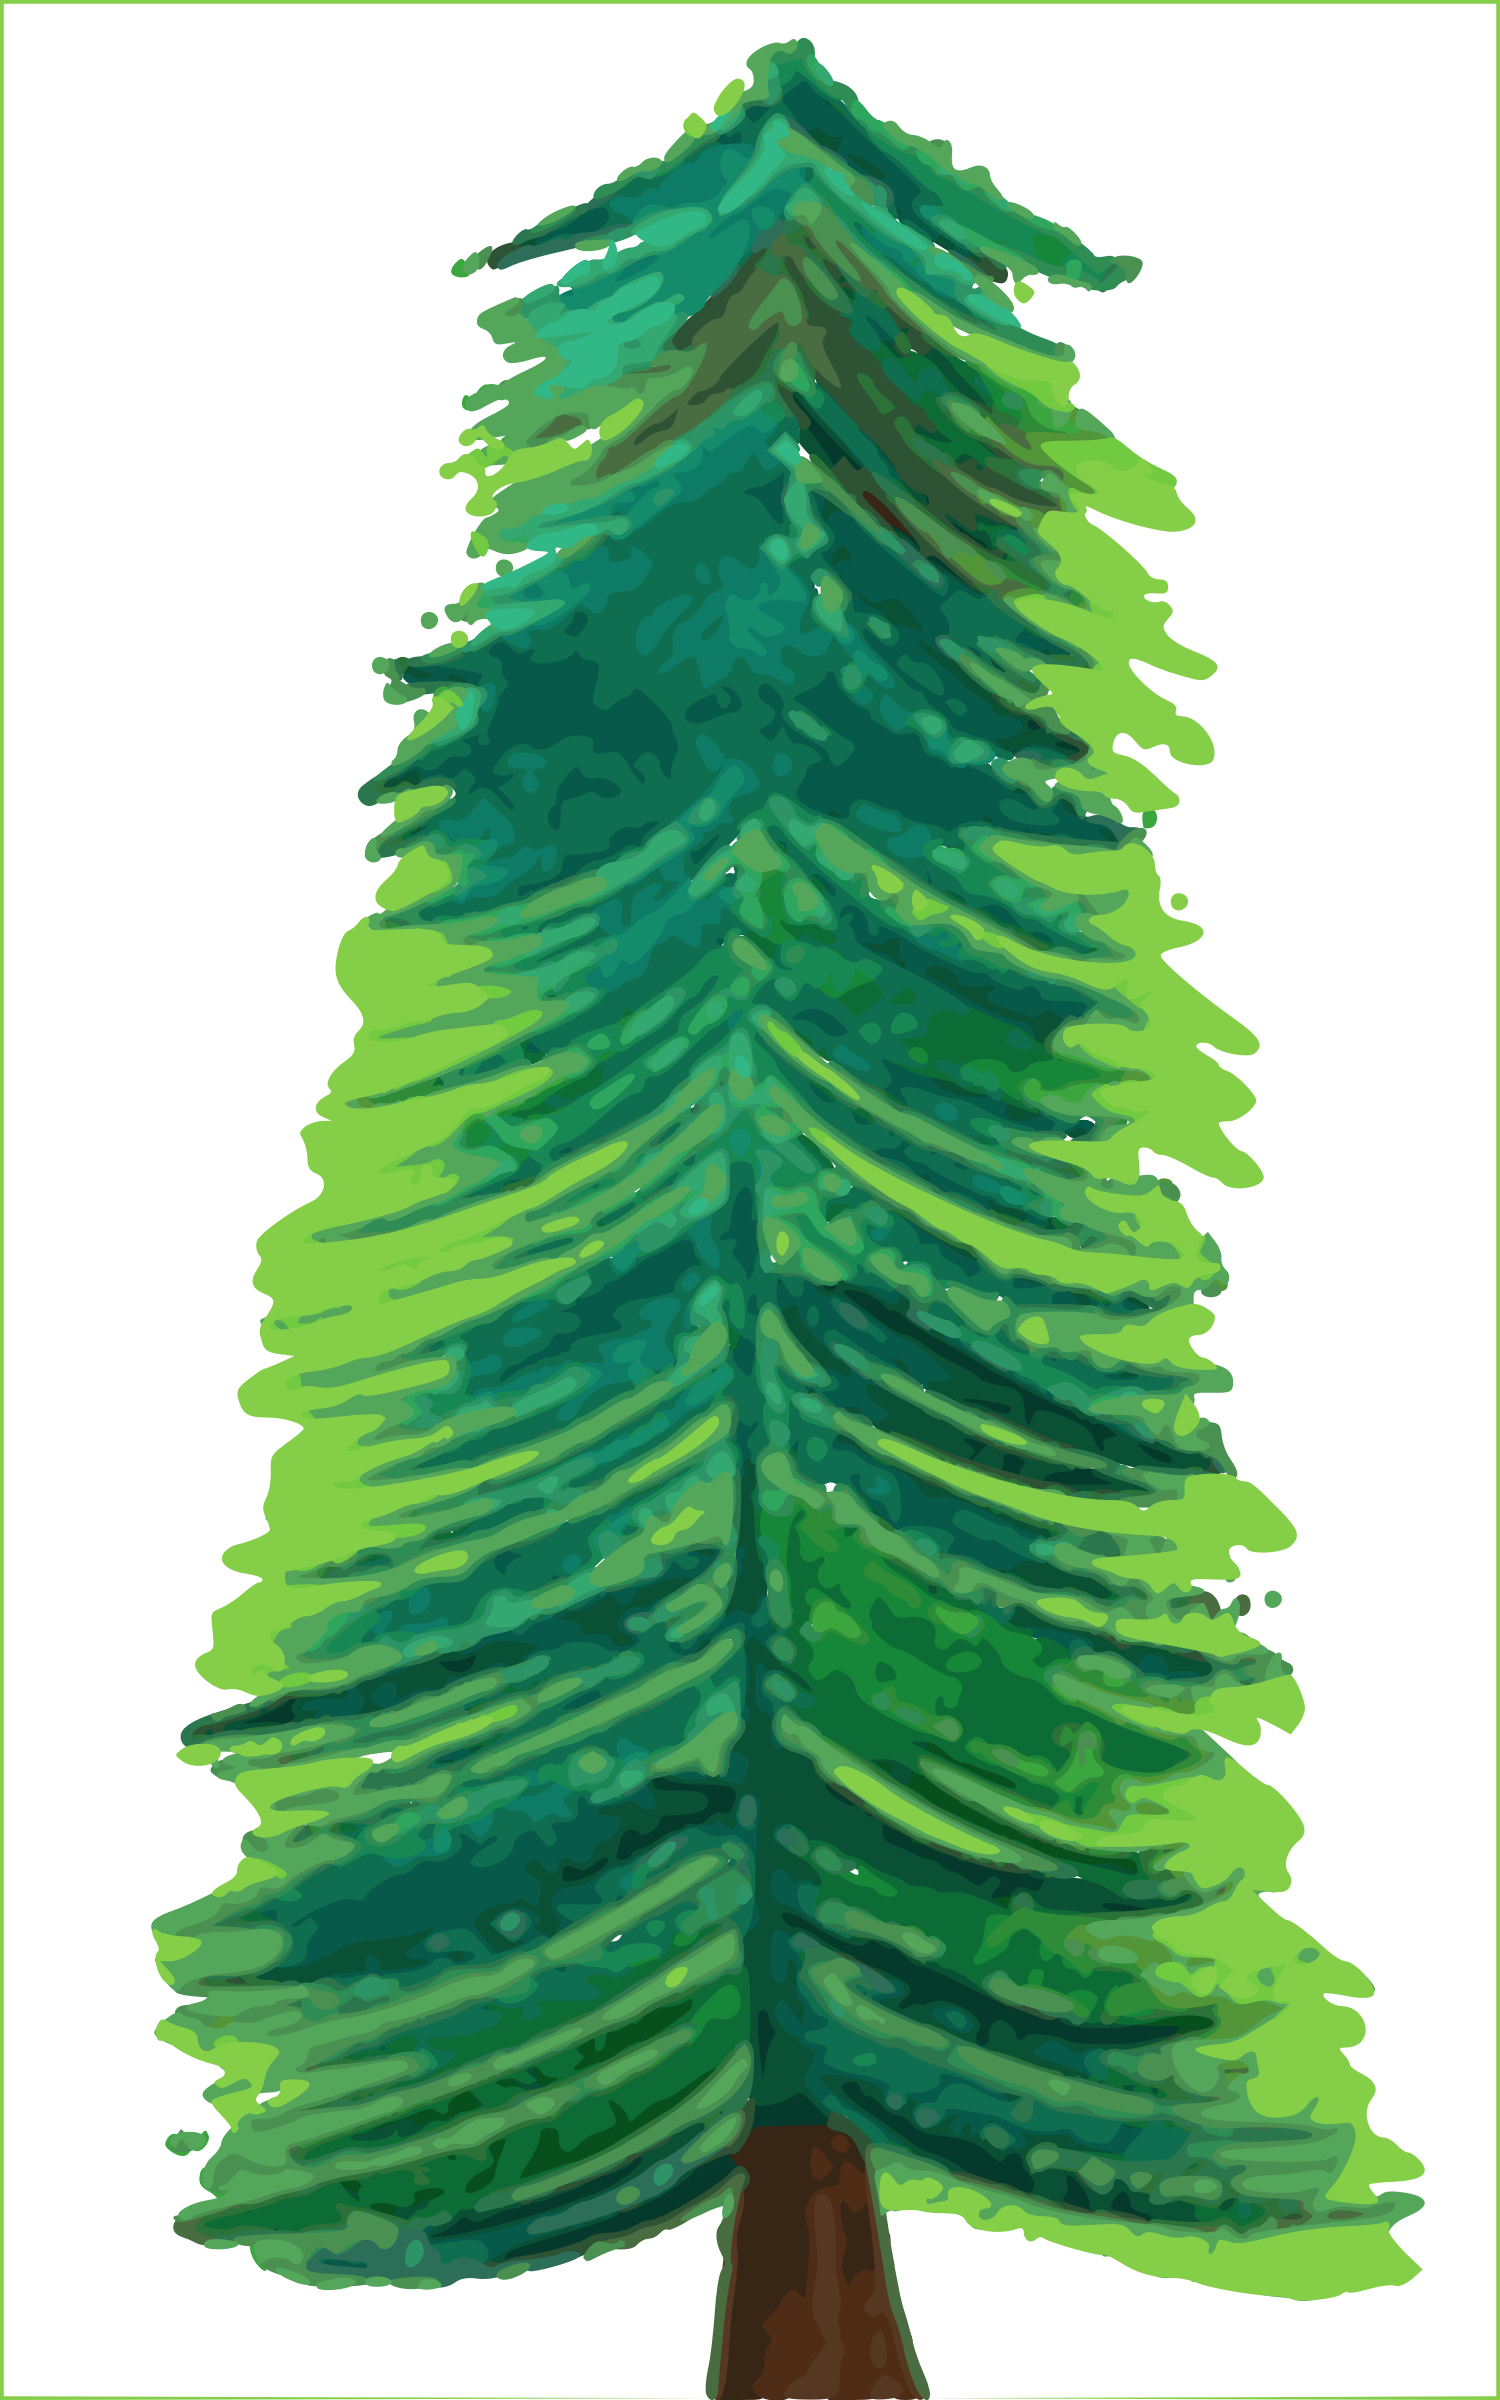 Tree clipart transparent background. Christmas color big image